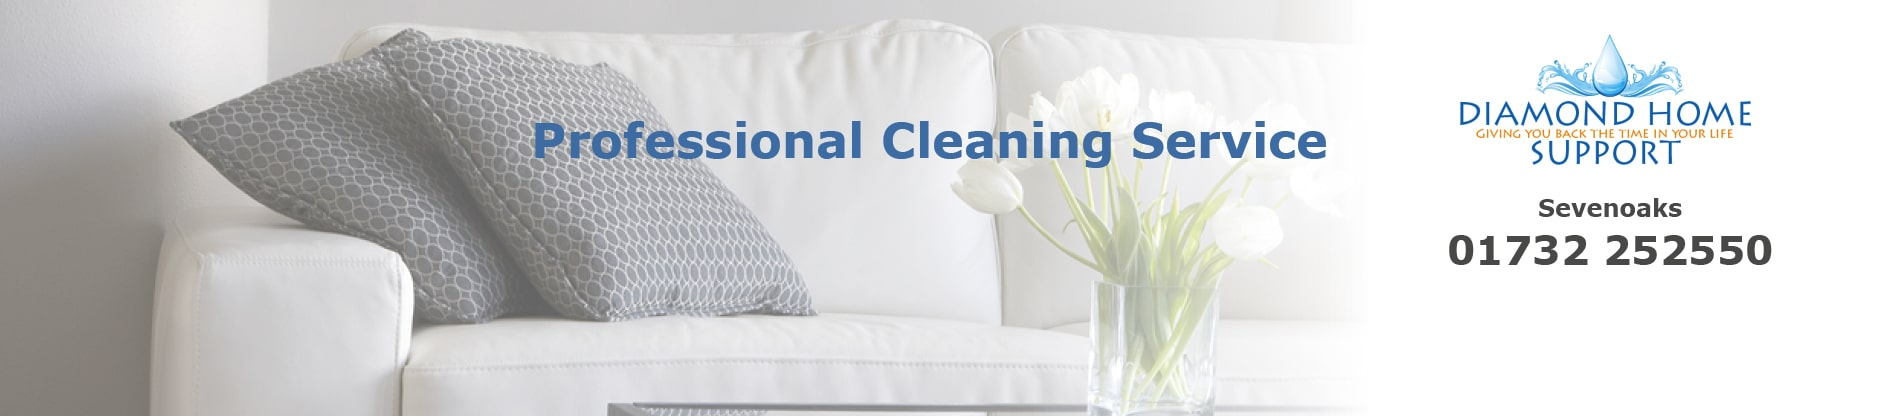 Cleaners in Sevenoaks